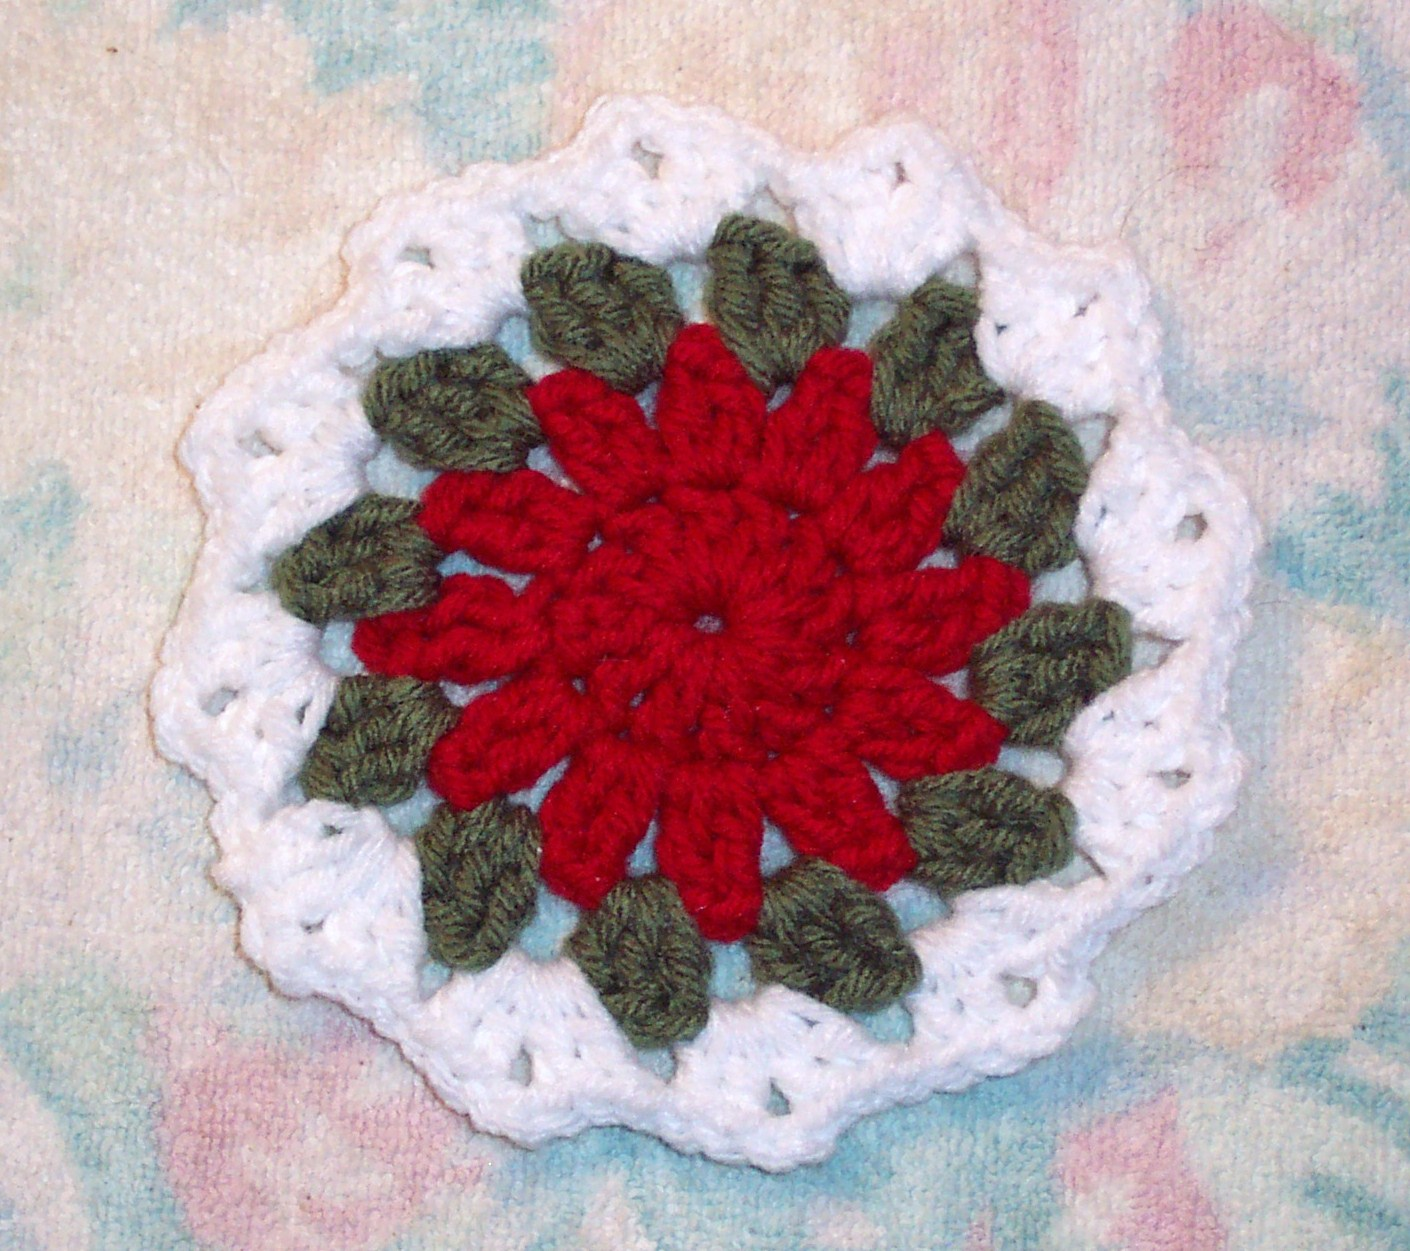 Crochet Patterns Xmas : SmoothFox Crochet and Knit: SmoothFoxs Holiday Coaster - Free Pattern